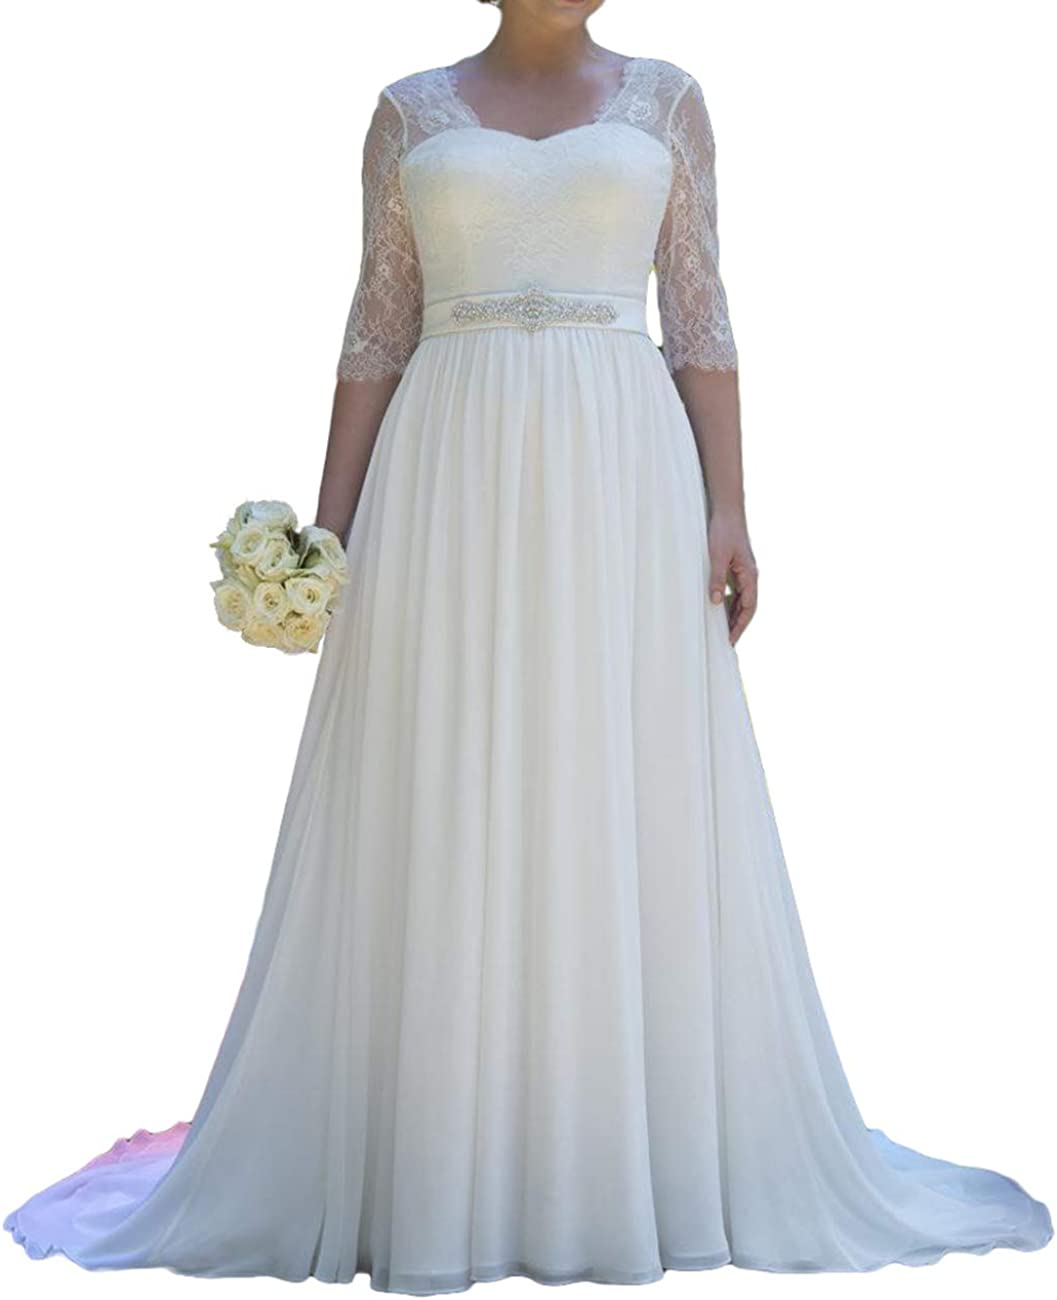 Japan Maker New Wedding Dresses for Bride Lace Dress Beach Chicago Mall Bridal Ch Gowms